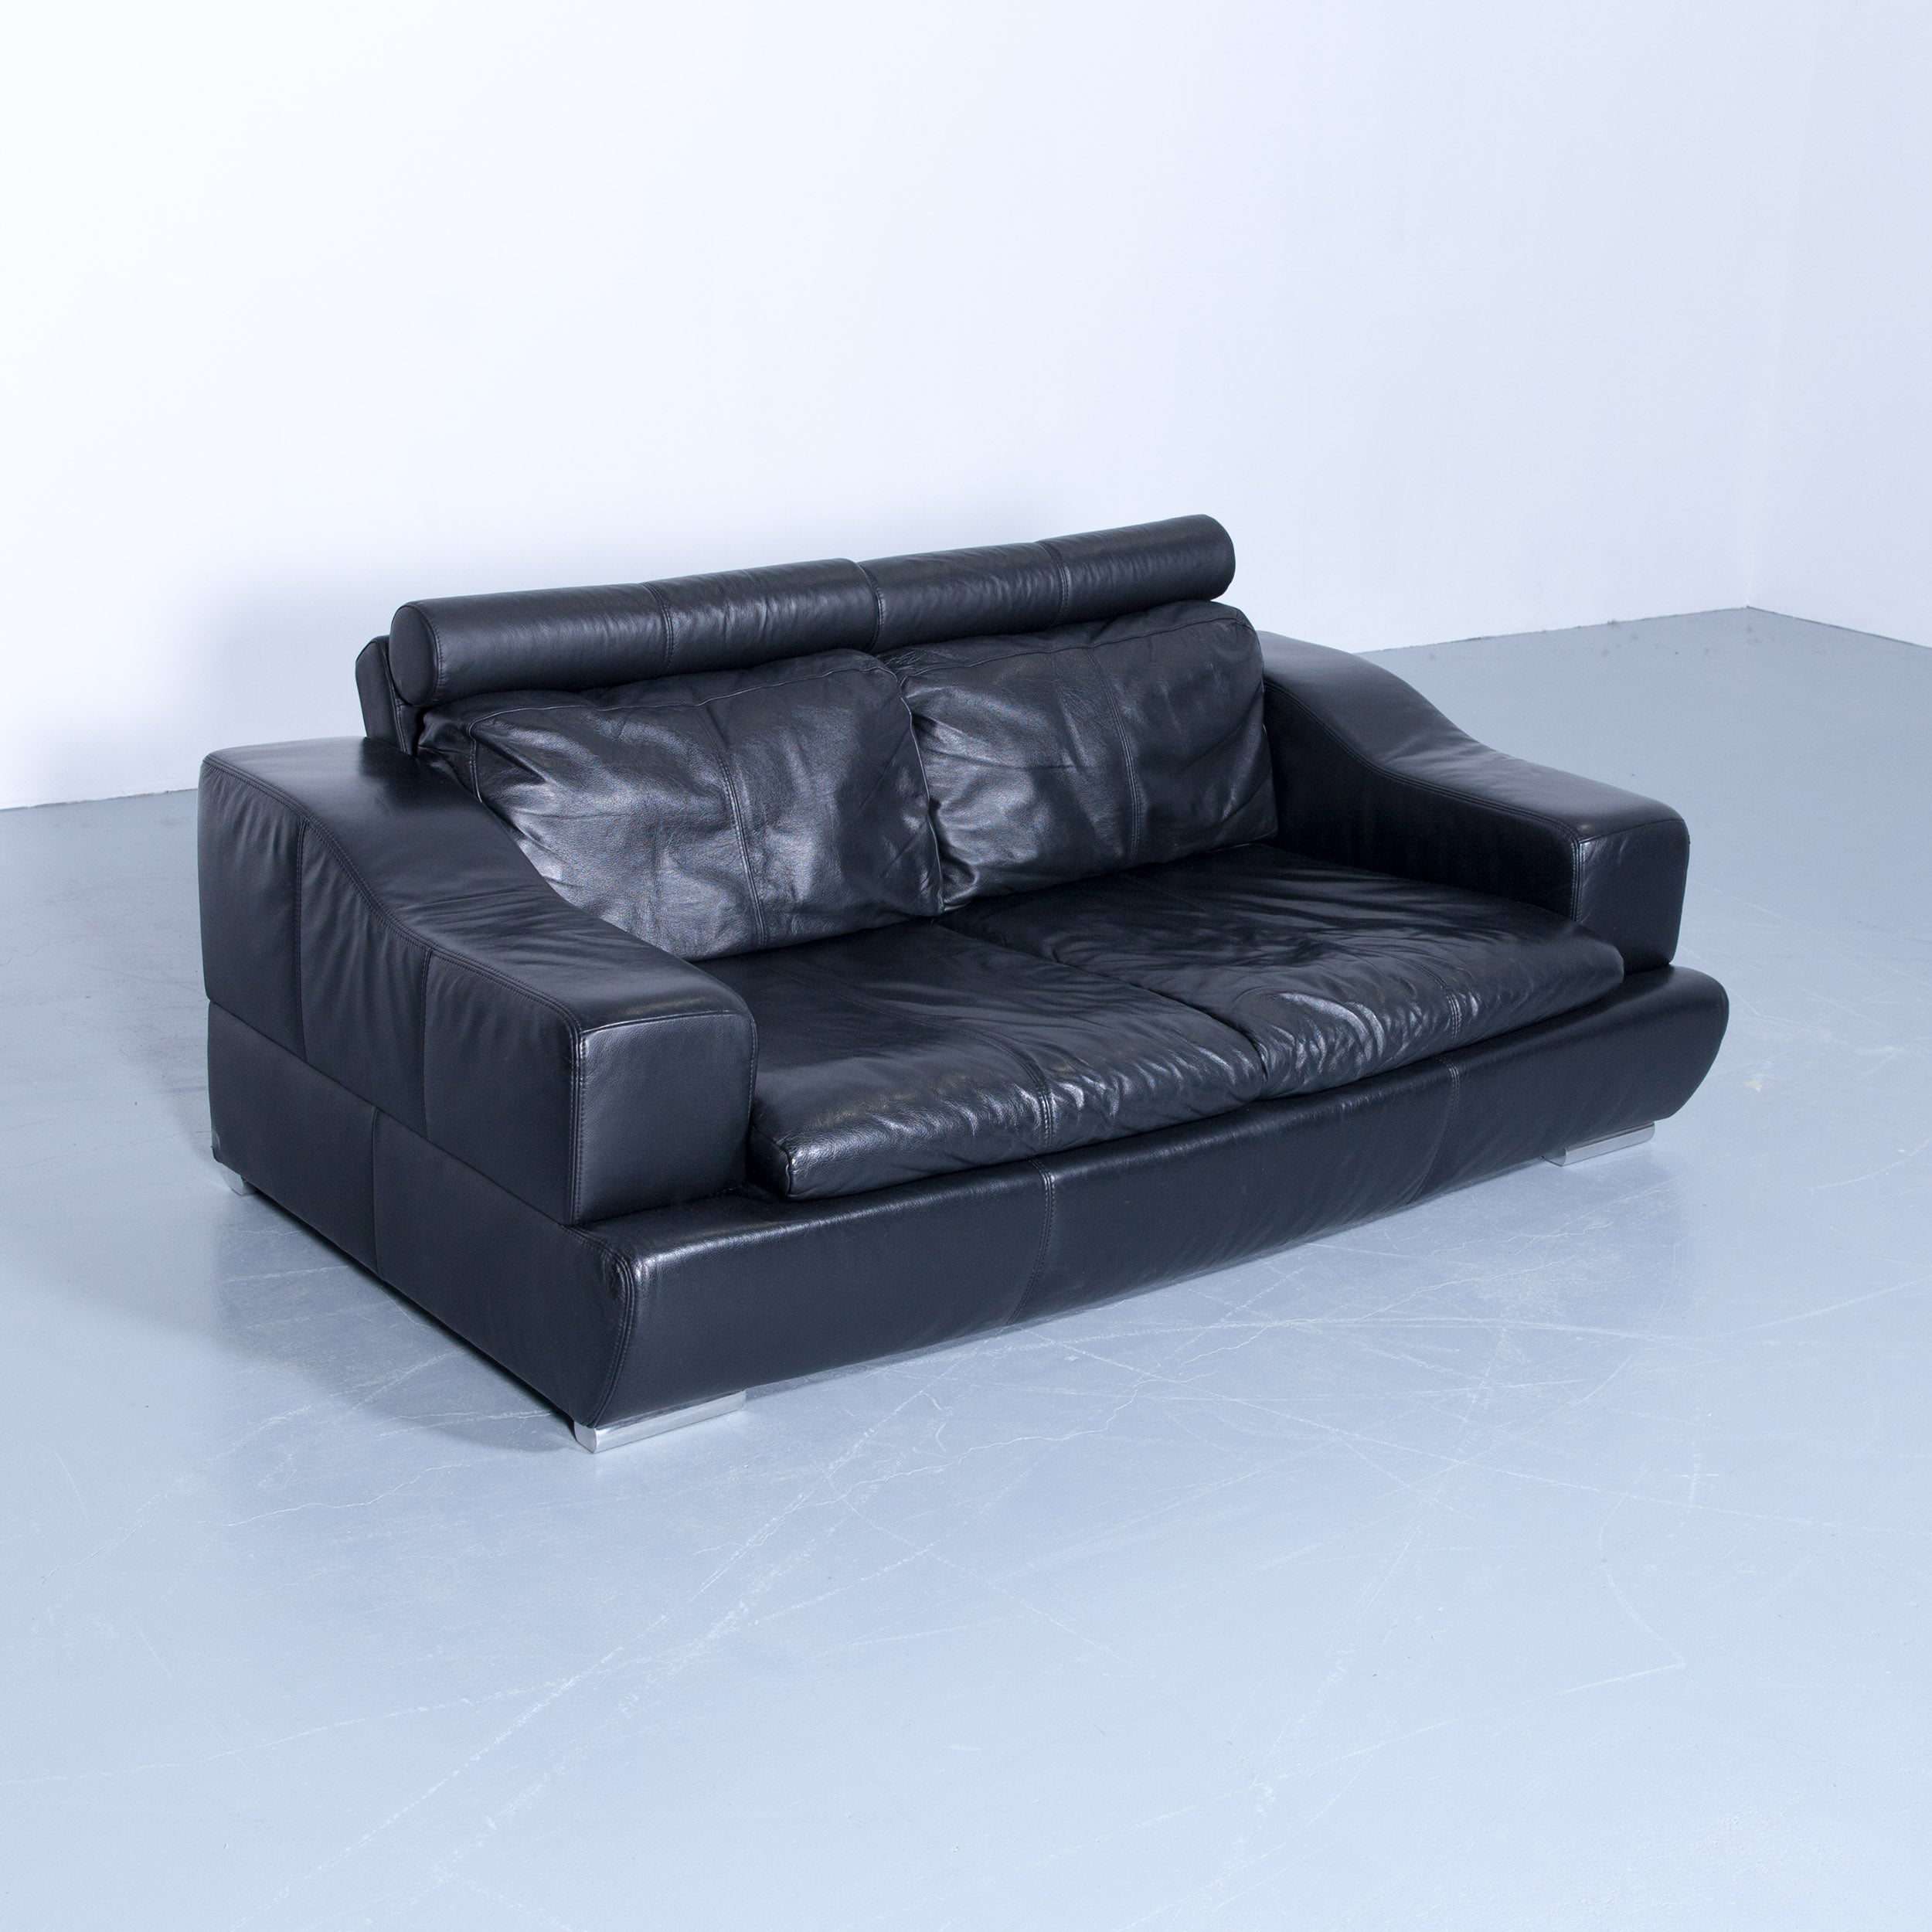 couch mit funktion affordable gallery of rolf benz zweisitzer sofa mit funktion schlafsofa in. Black Bedroom Furniture Sets. Home Design Ideas